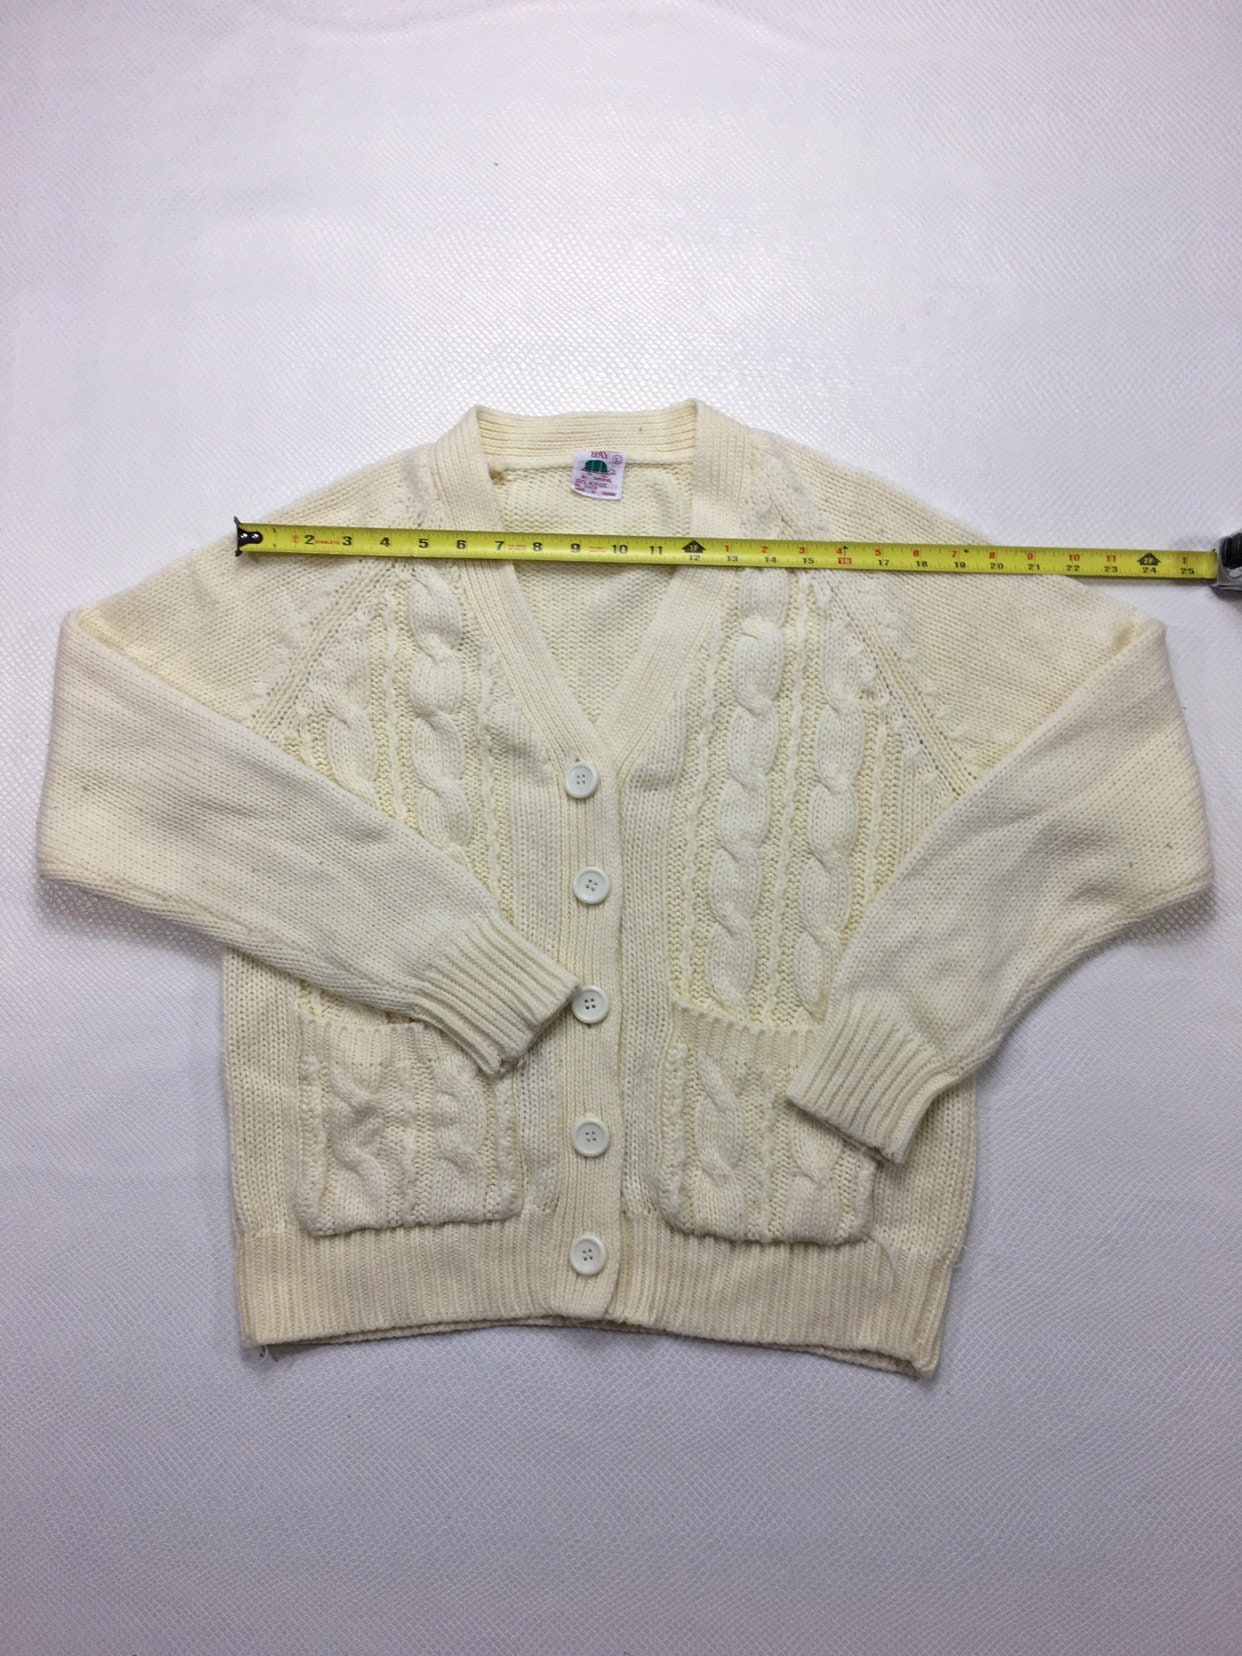 Vintage Beige Cardigan Large Mr Rogers Sweater L Chunky Cable Knit Sweater Ribbed Acrylic Knit Cardigan L Beige Button Up Cardigan Large